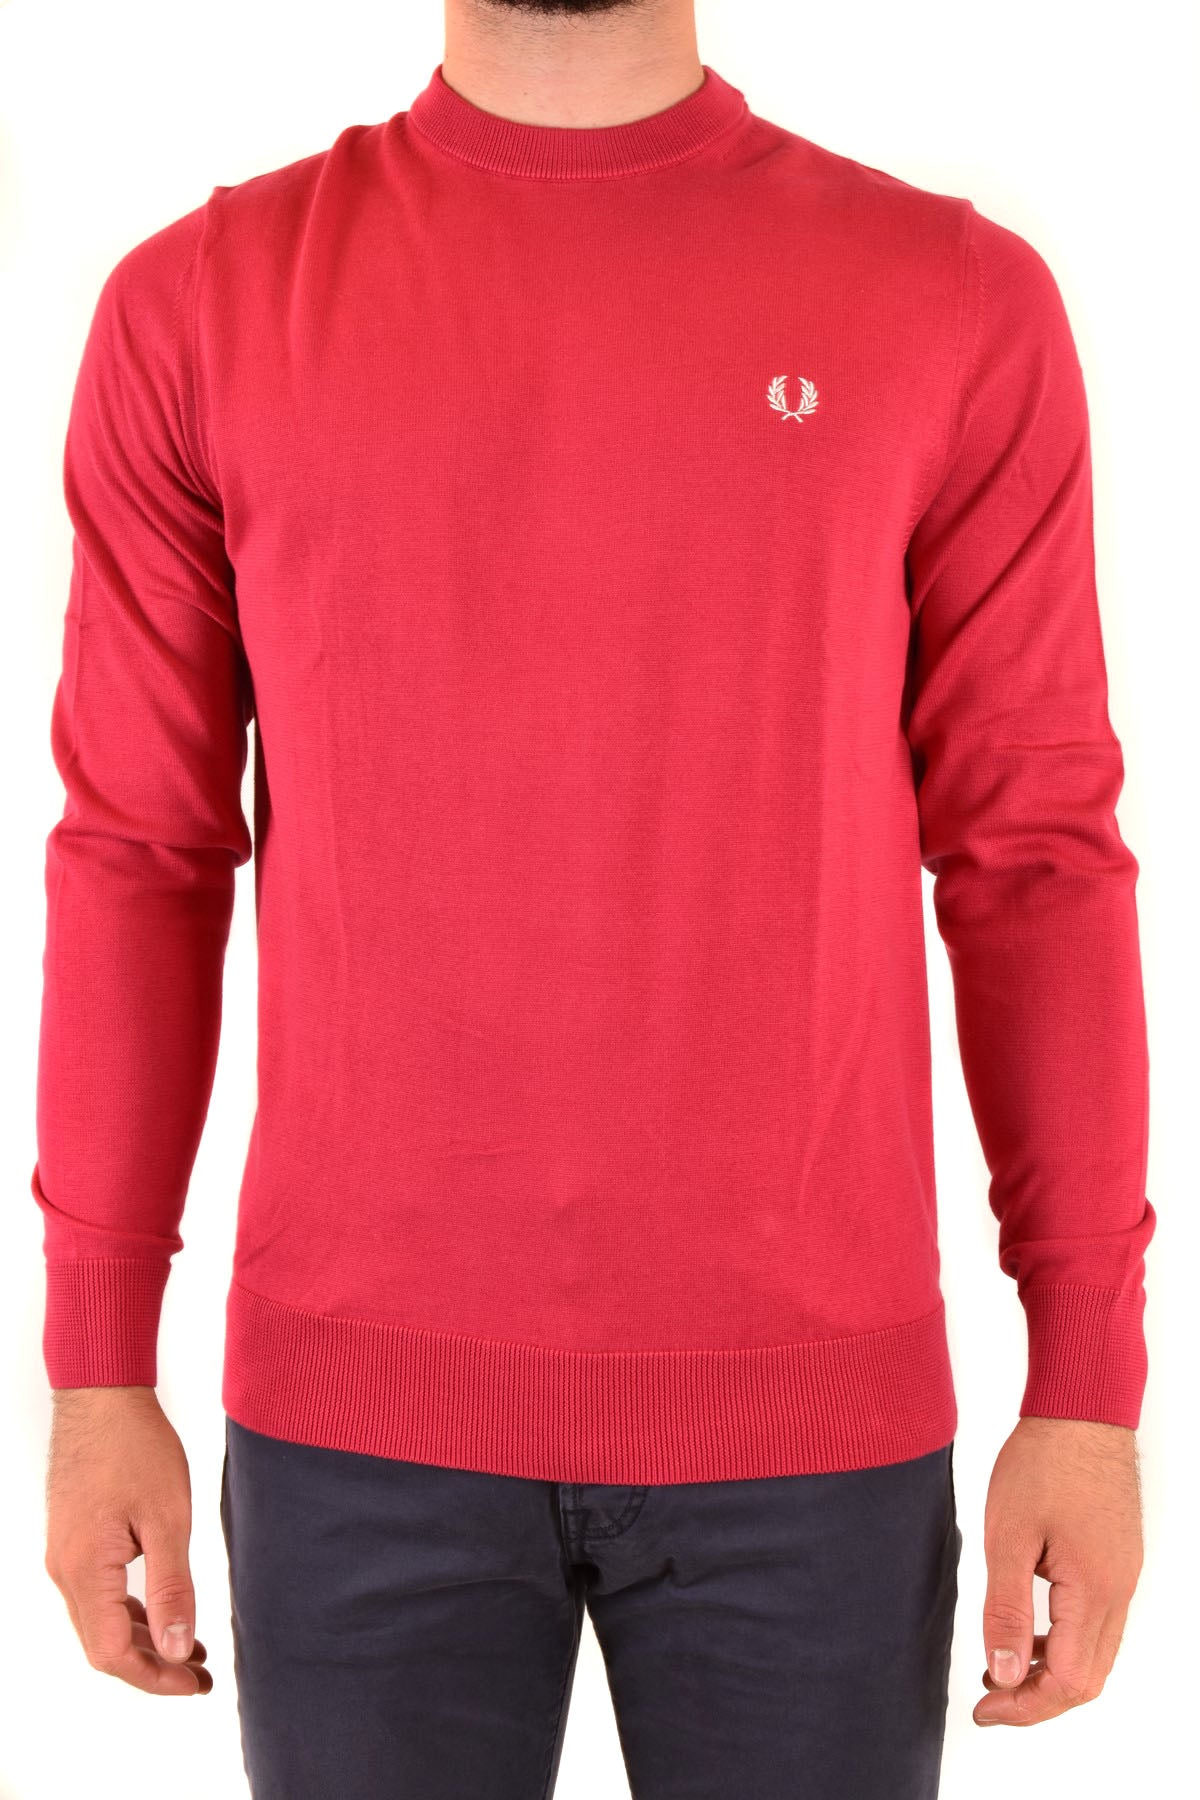 Sweater Fred Perry-Men's Fashion - Men's Clothing - Hoodies & Sweatshirts-S-Product Details Manufacturer Part Number: 7015557A8.V0036Year: 2020Composition: Cotton 100%Size: IntGender: ManMade In: ChinaSeason: Fall / WinterMain Color: RedClothing Type: Sweater Terms: New With Label-Keyomi-Sook